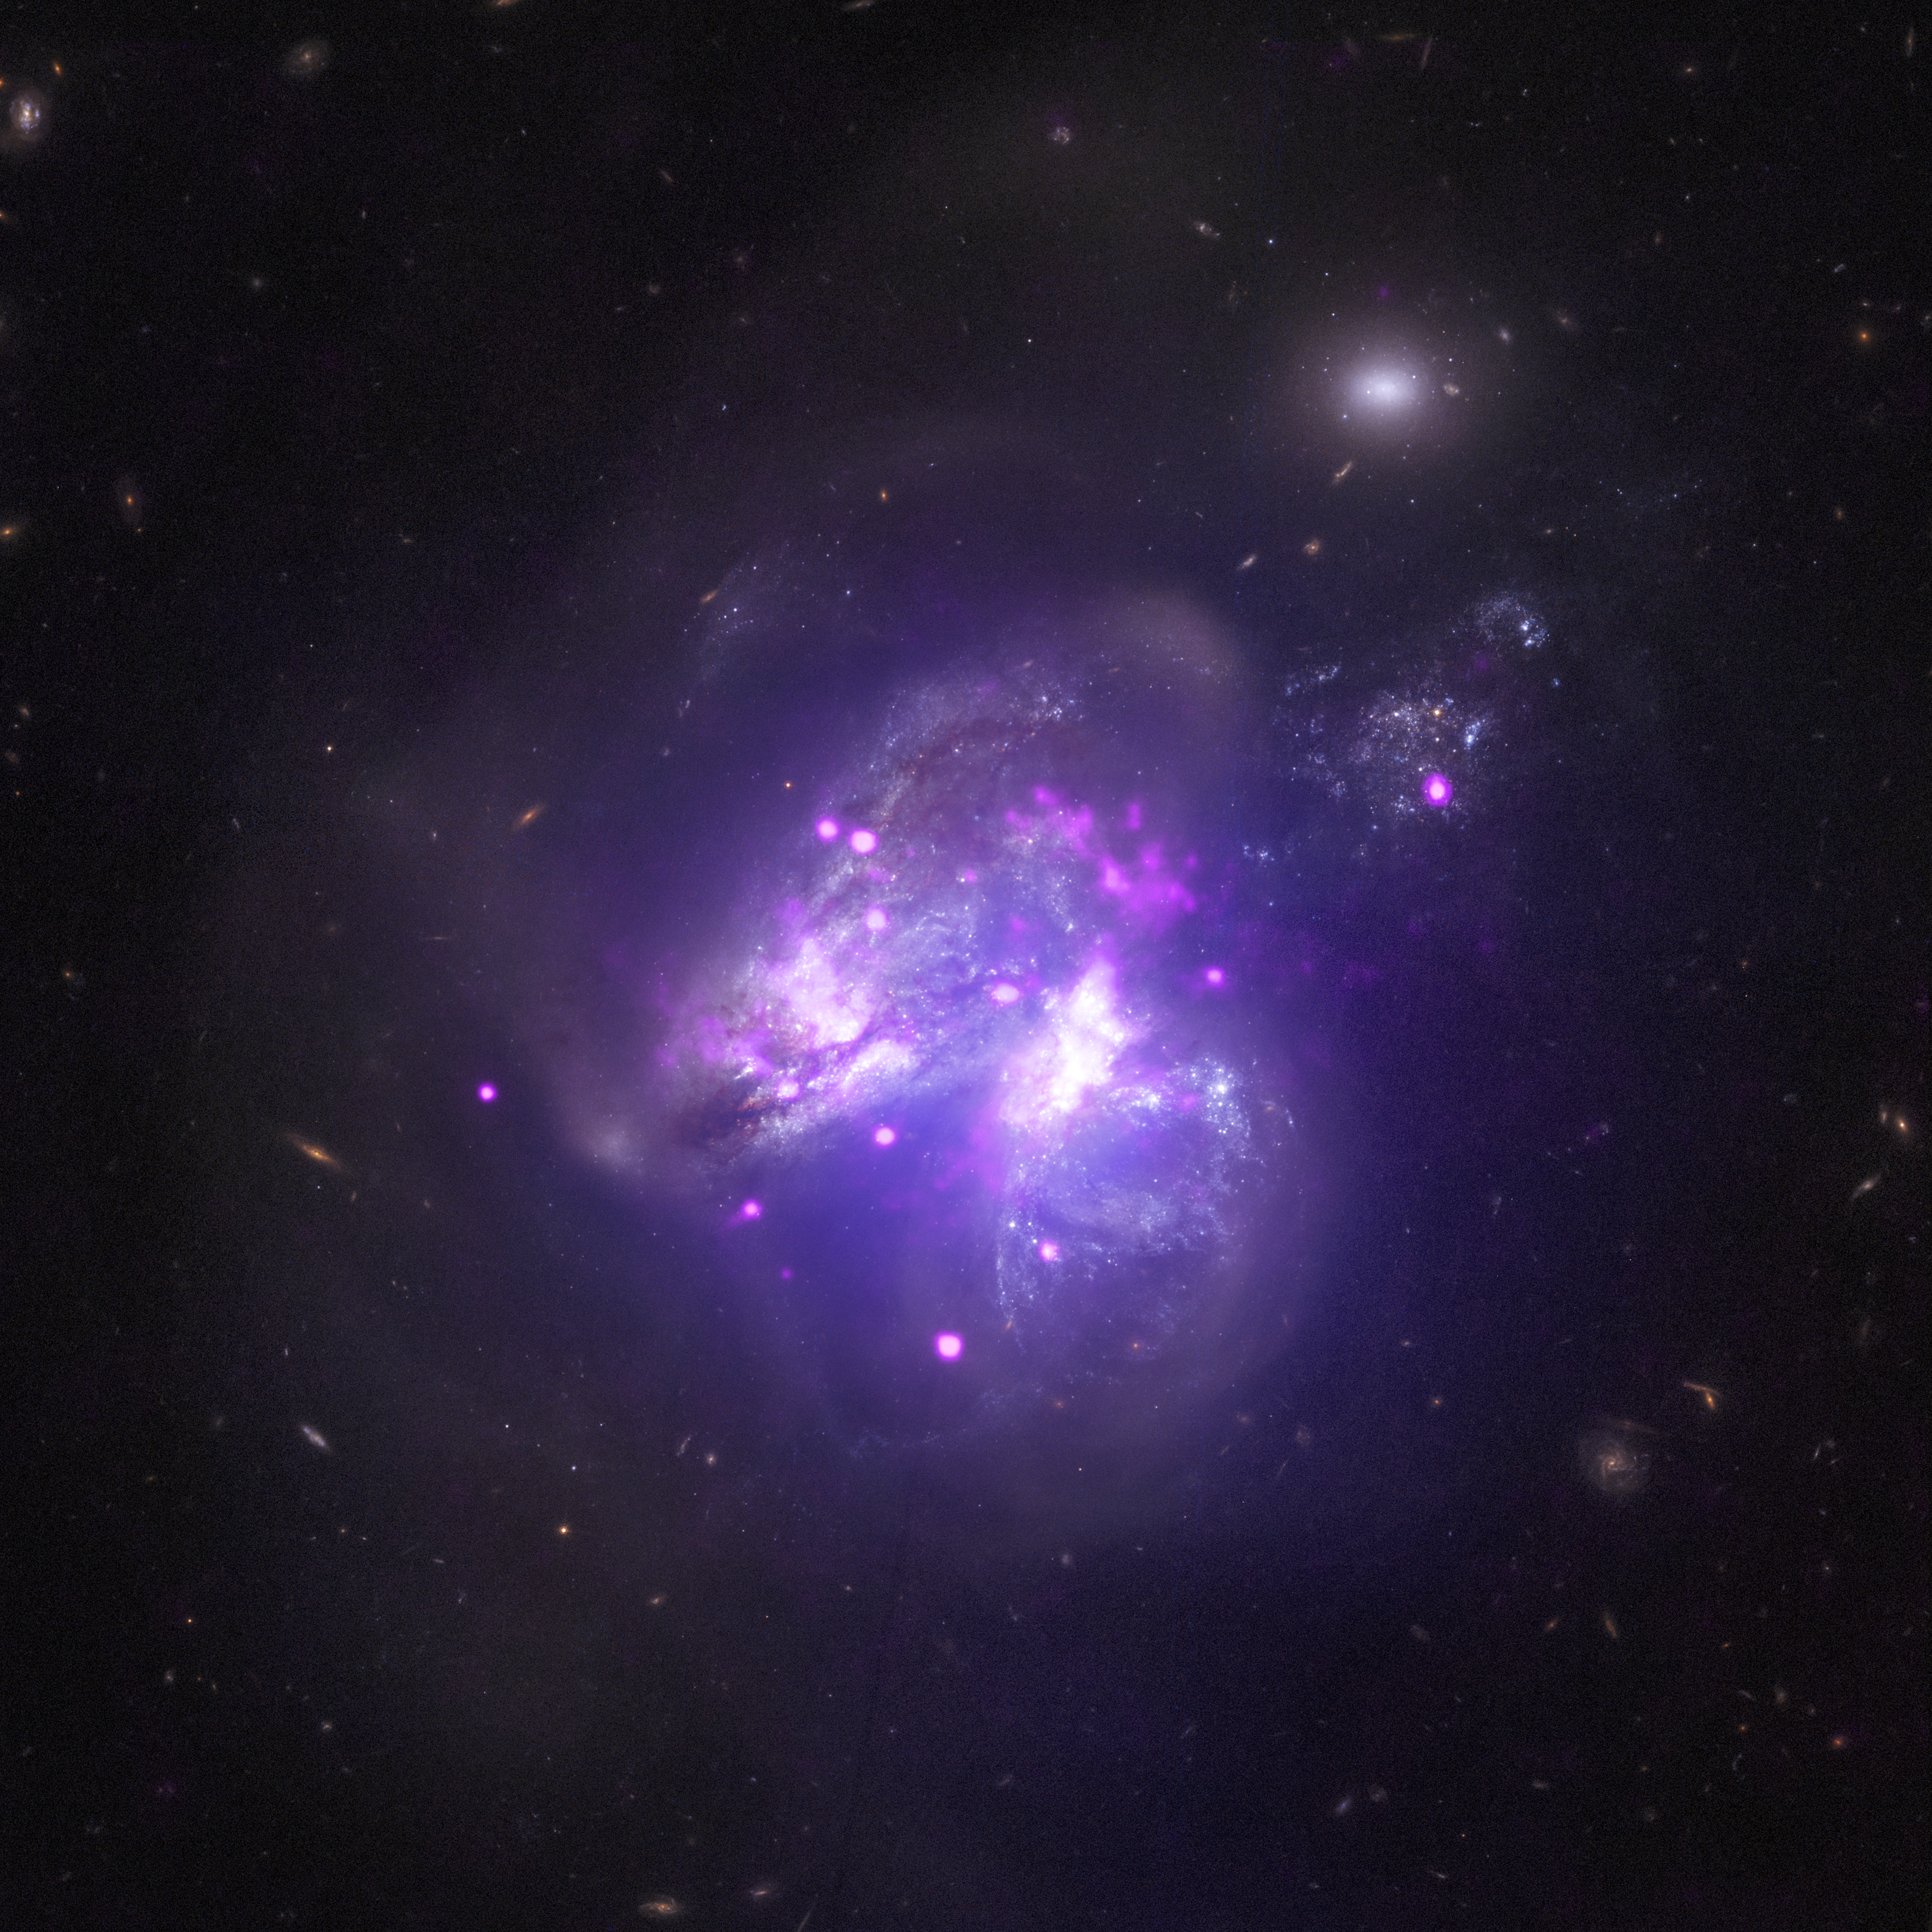 Star Discovered in Closest Known Orbit Around Likely Black Hole | NASA